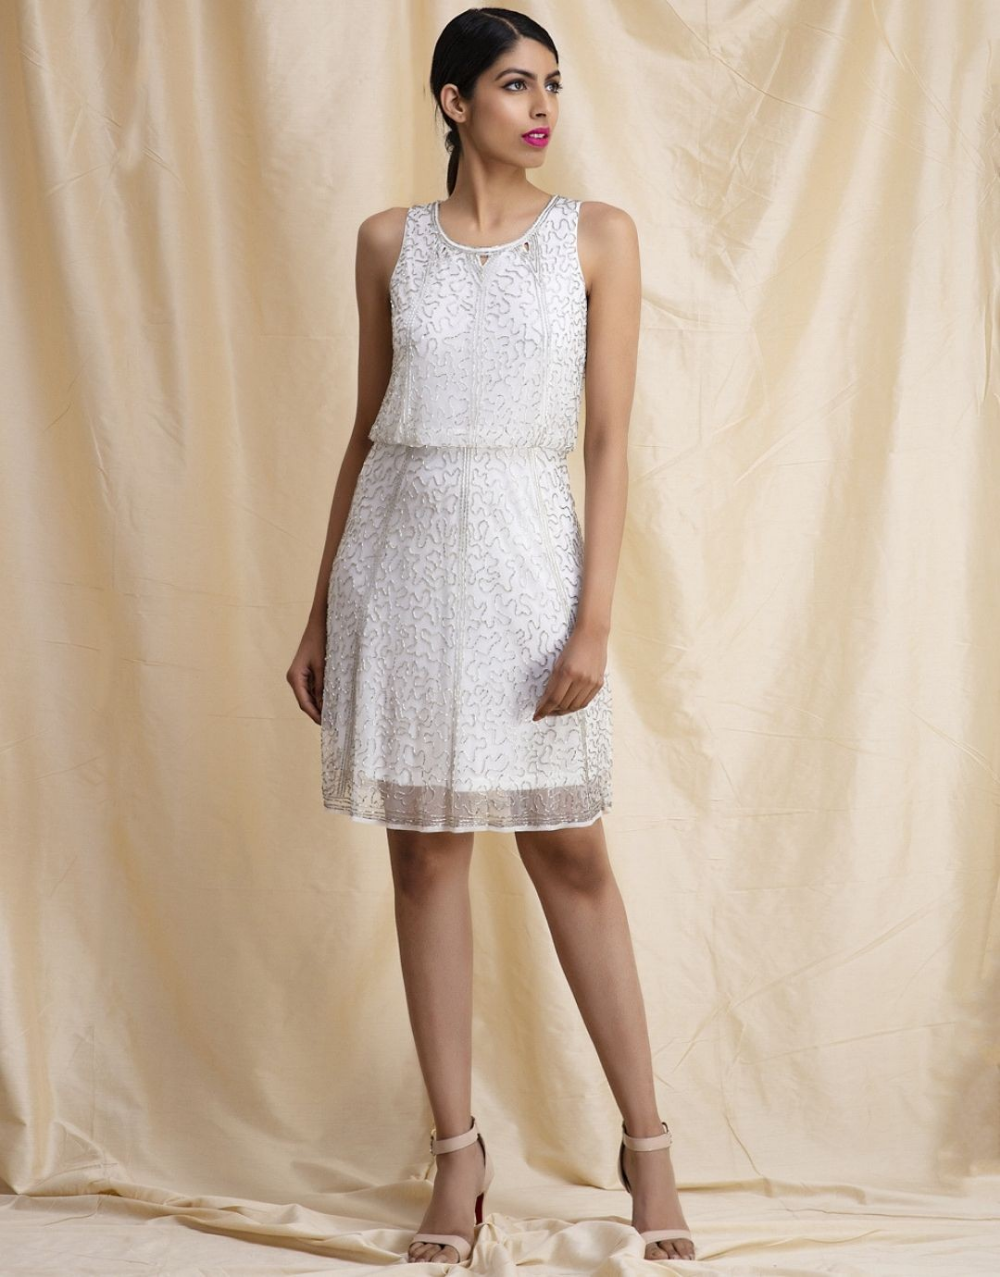 White Silver Embellished Dress From The House Of Ekum A Blouson Style Short White Dress With All Over Silver Hand Embellished Dress Dresses White Short Dress [ 1277 x 1000 Pixel ]